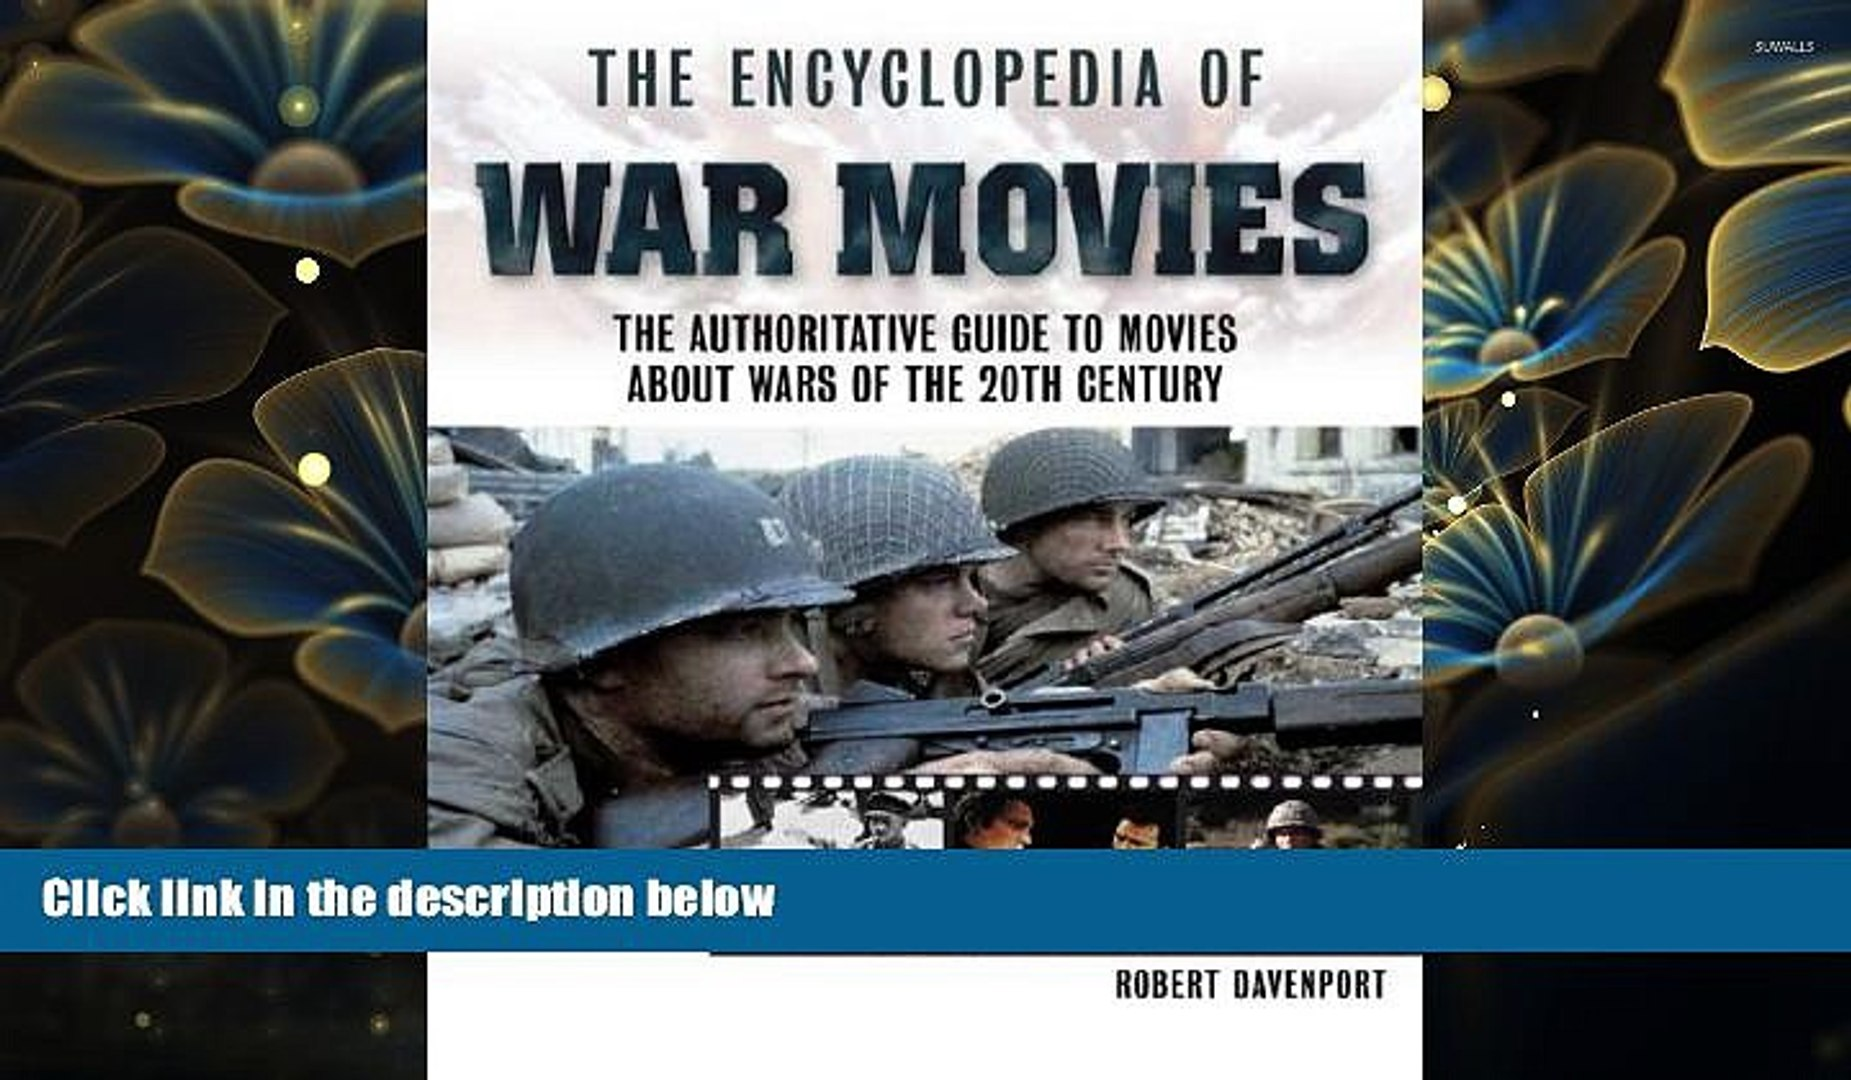 FREE [DOWNLOAD] The Encyclopedia of War Movies: A Complete Guide to Movies about Wars of the